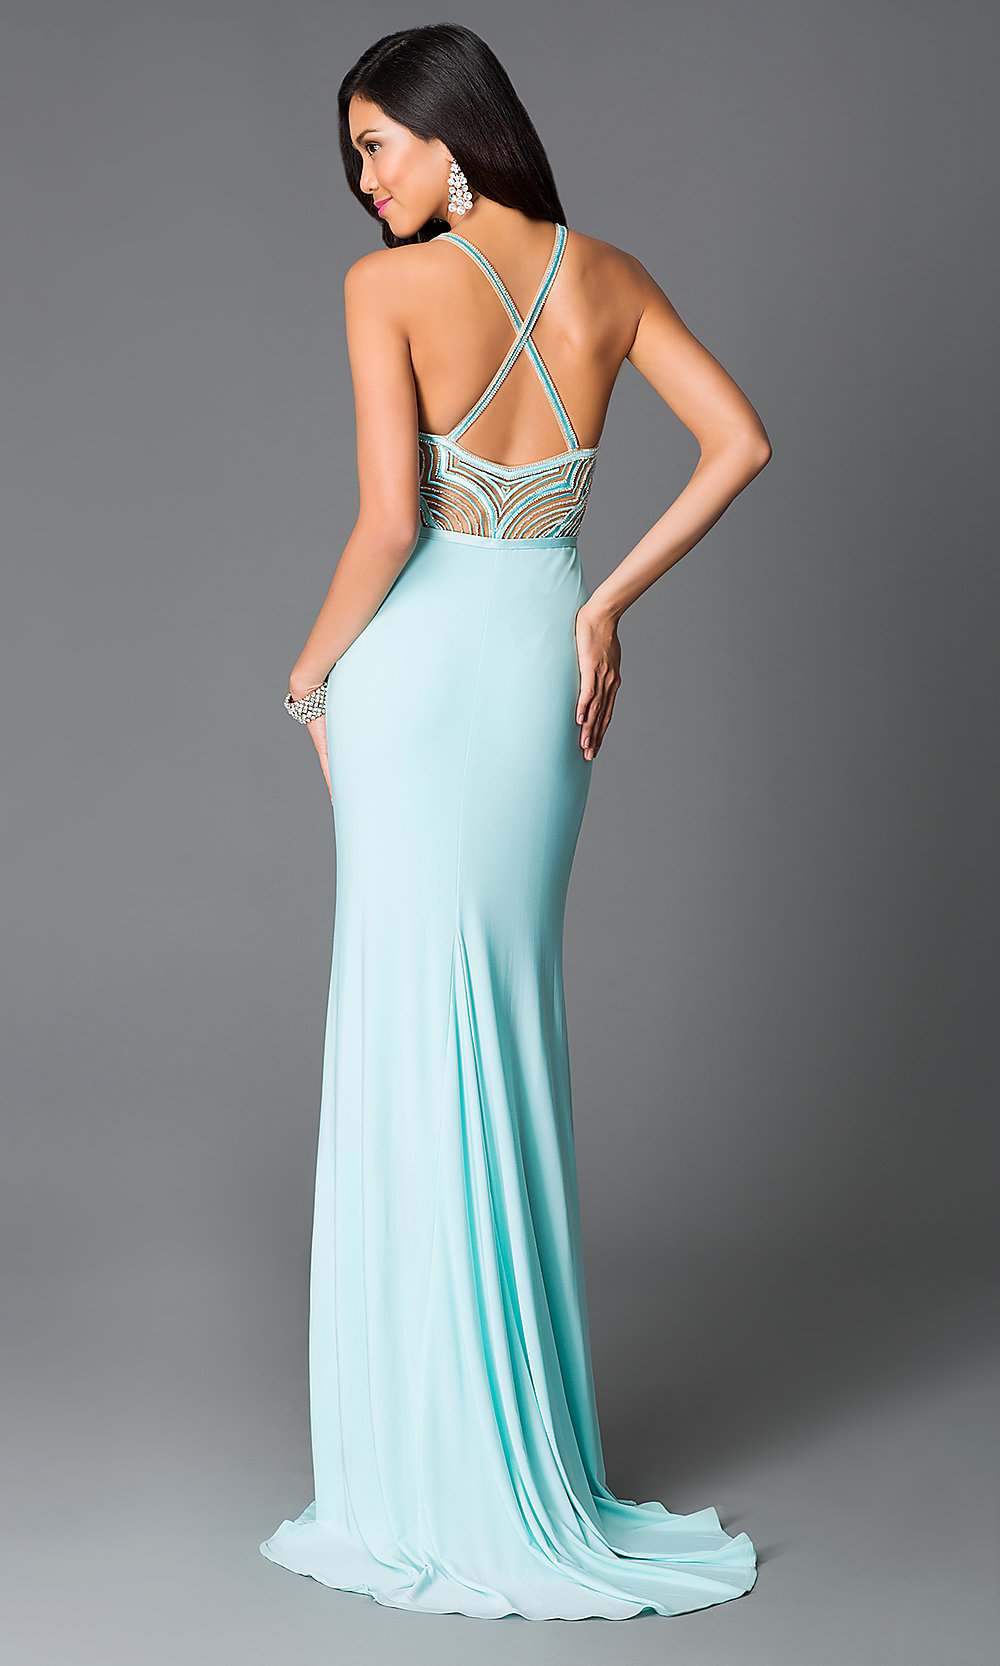 Wedding Aqua Prom Dresses prom dresses celebrity sexy evening gowns floor length hover to zoom